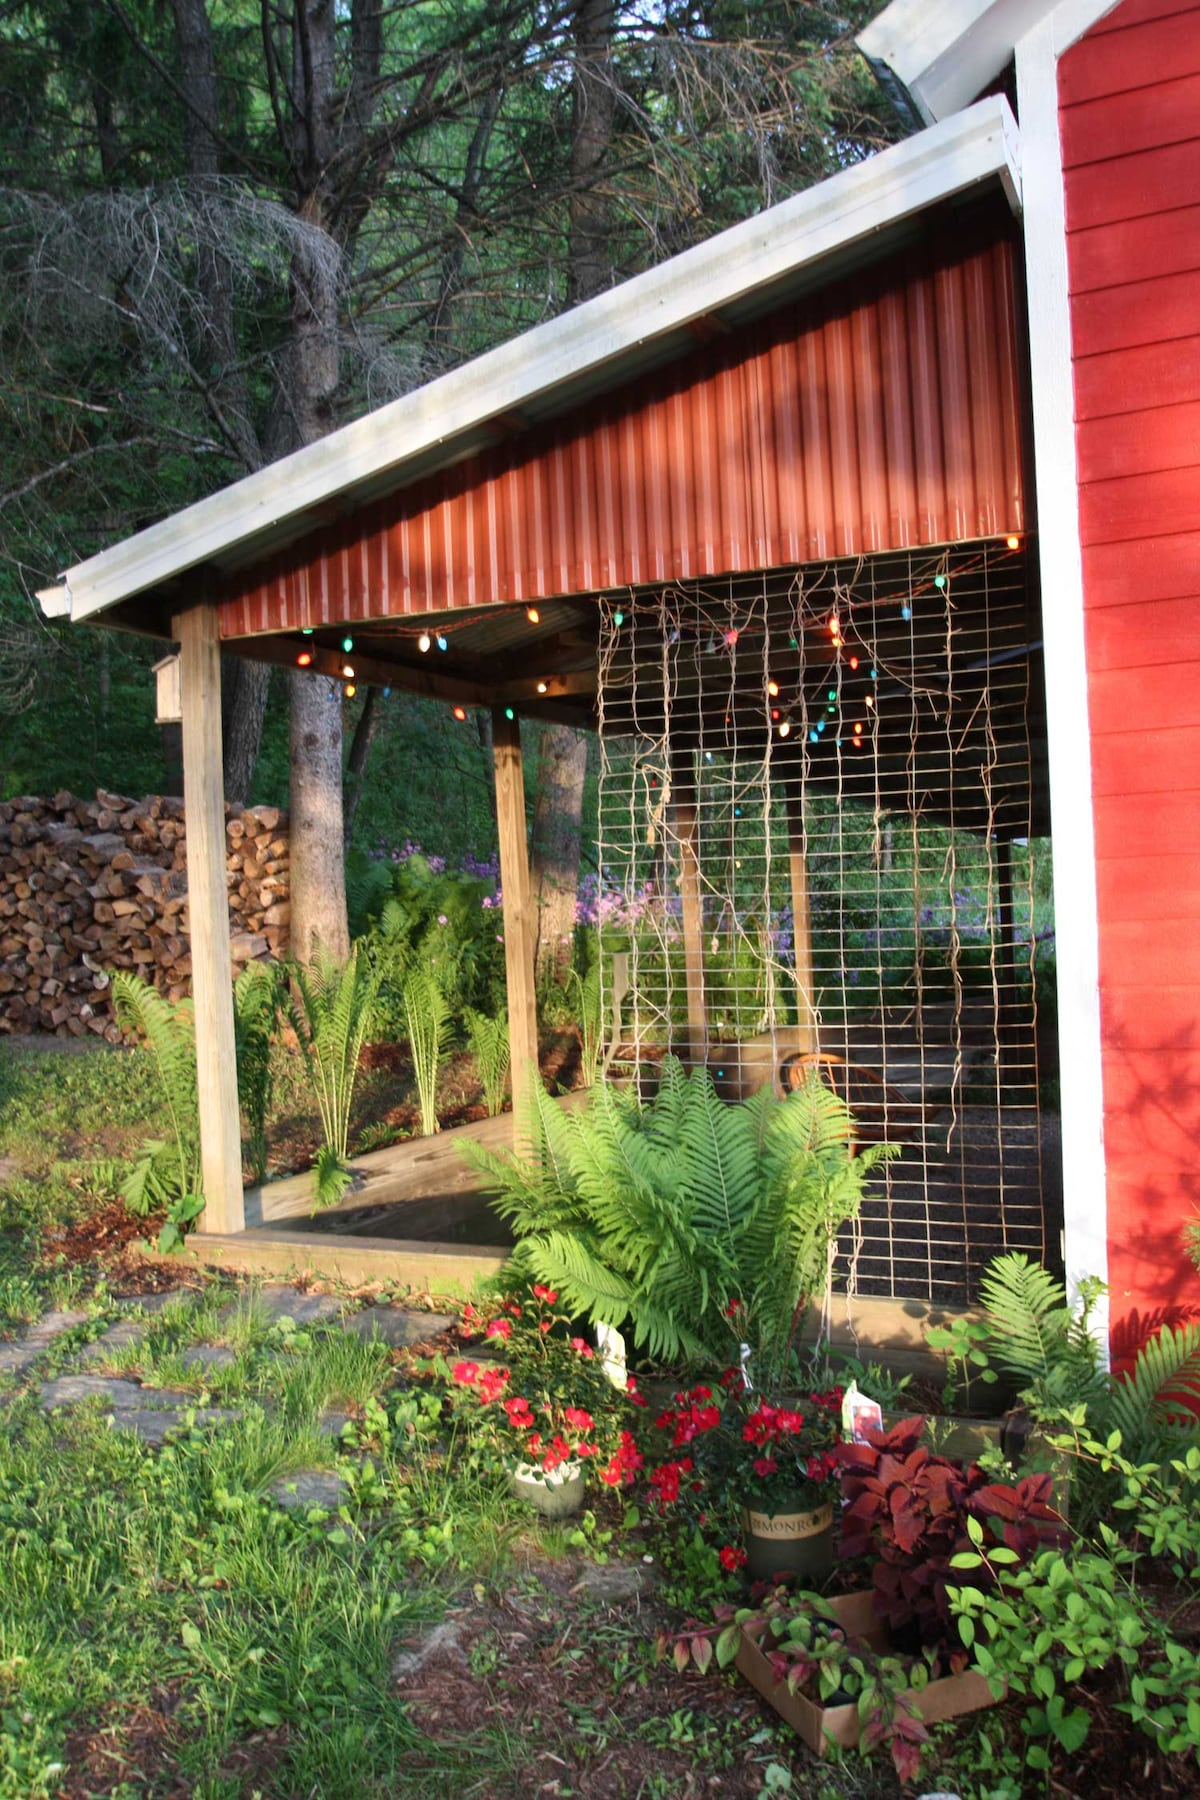 Red Clover Cabin in The Driftless